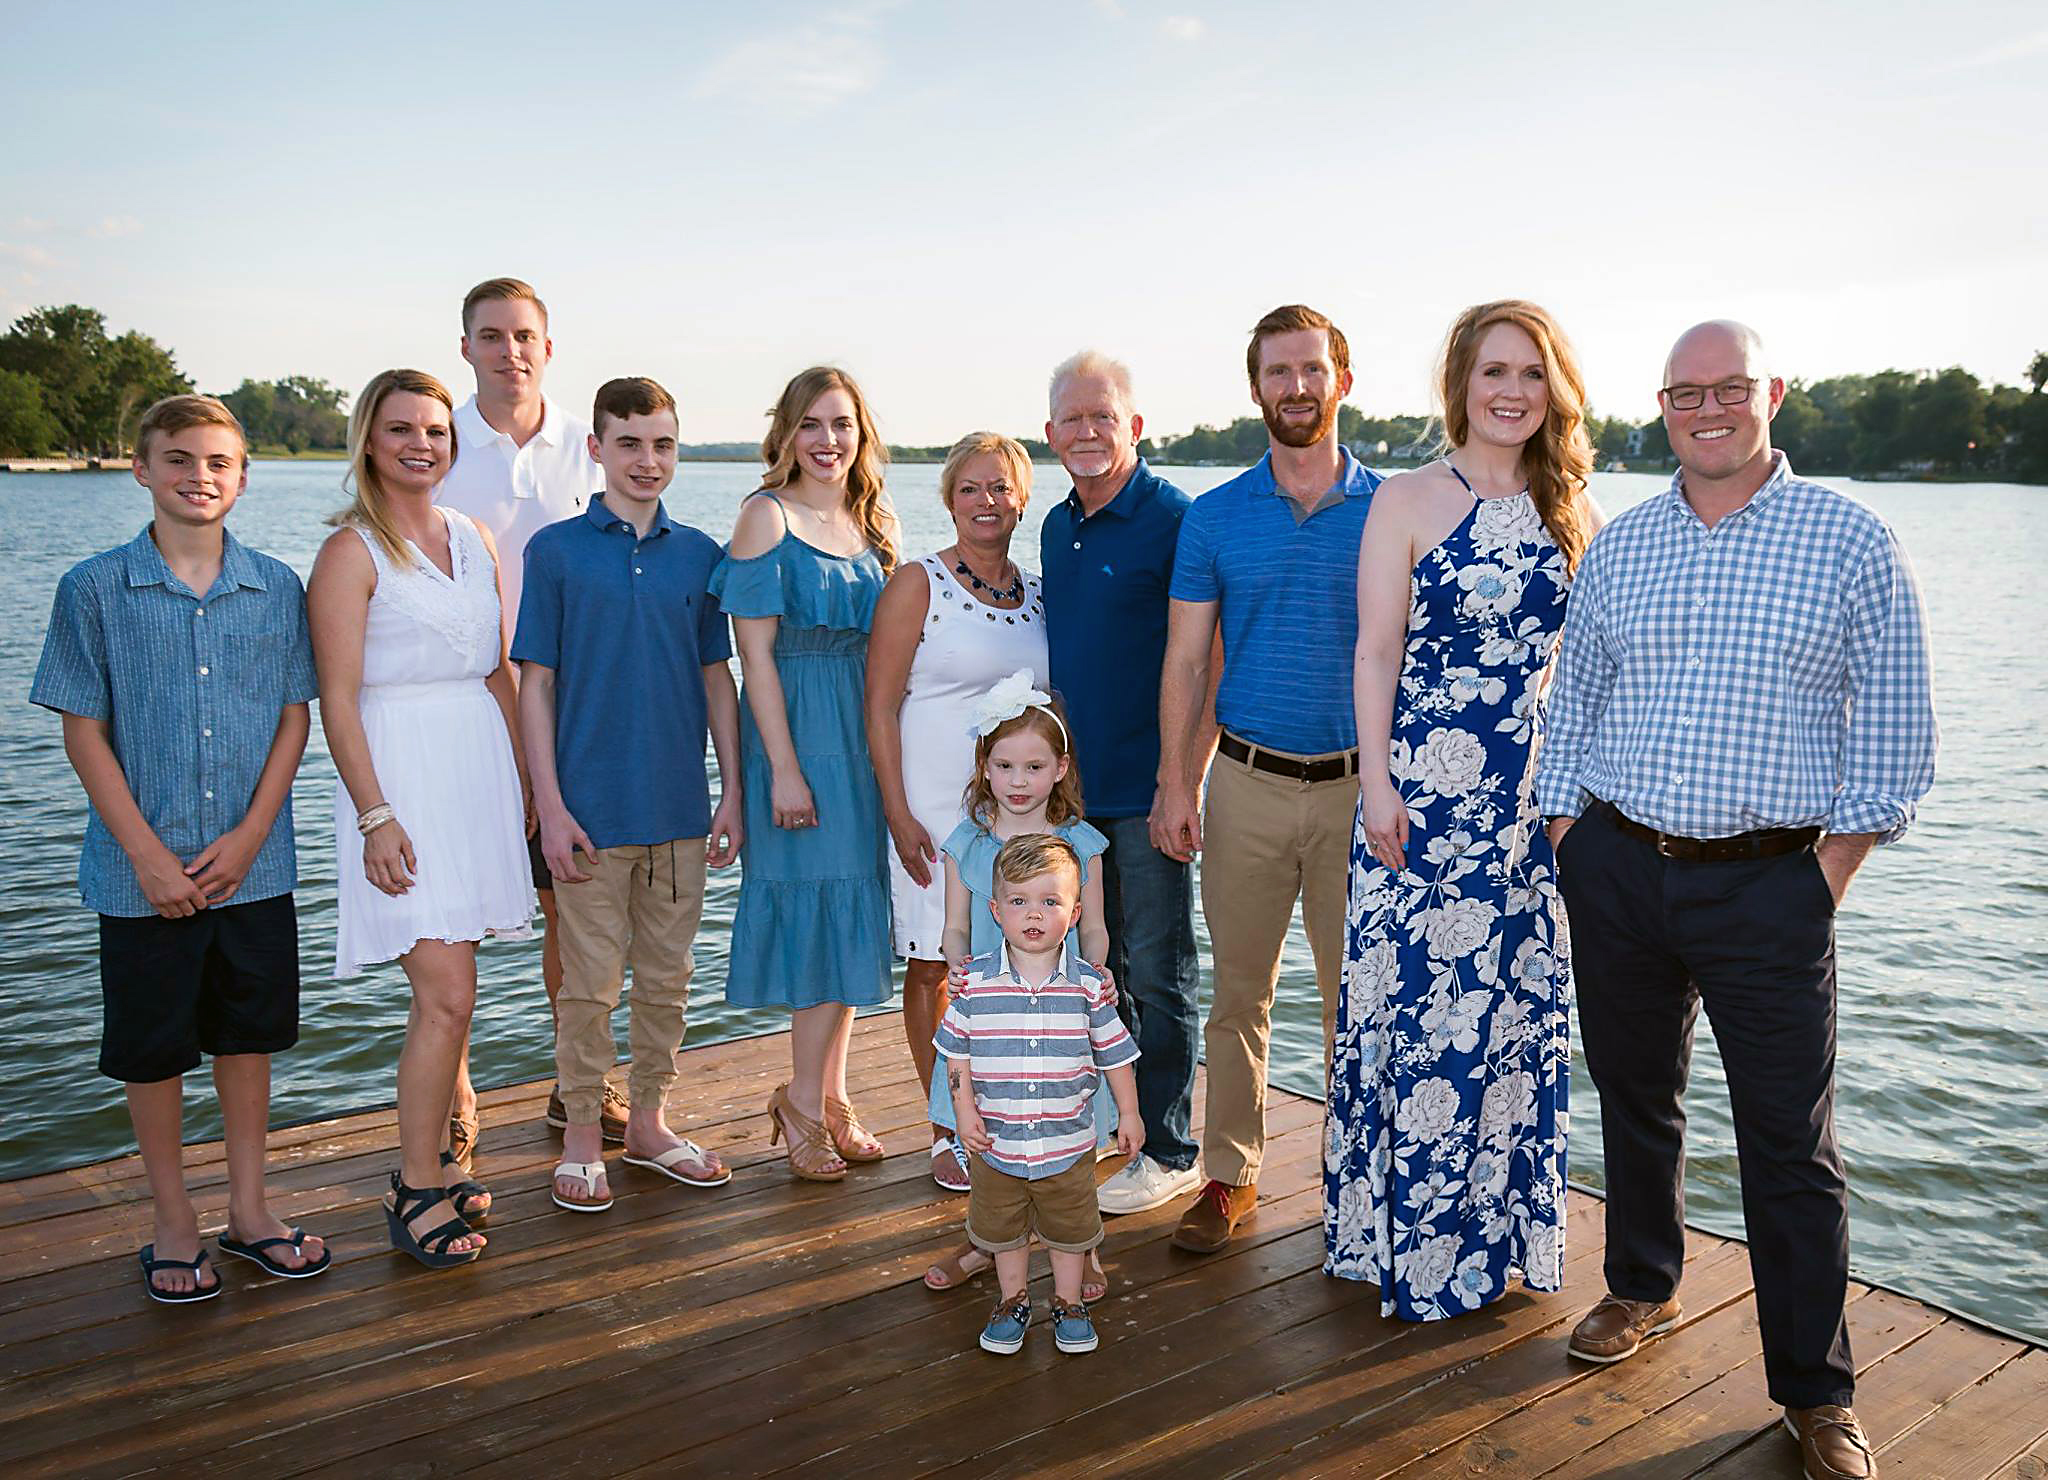 Scott V. and Kim with entire family at Weatherby Lake.